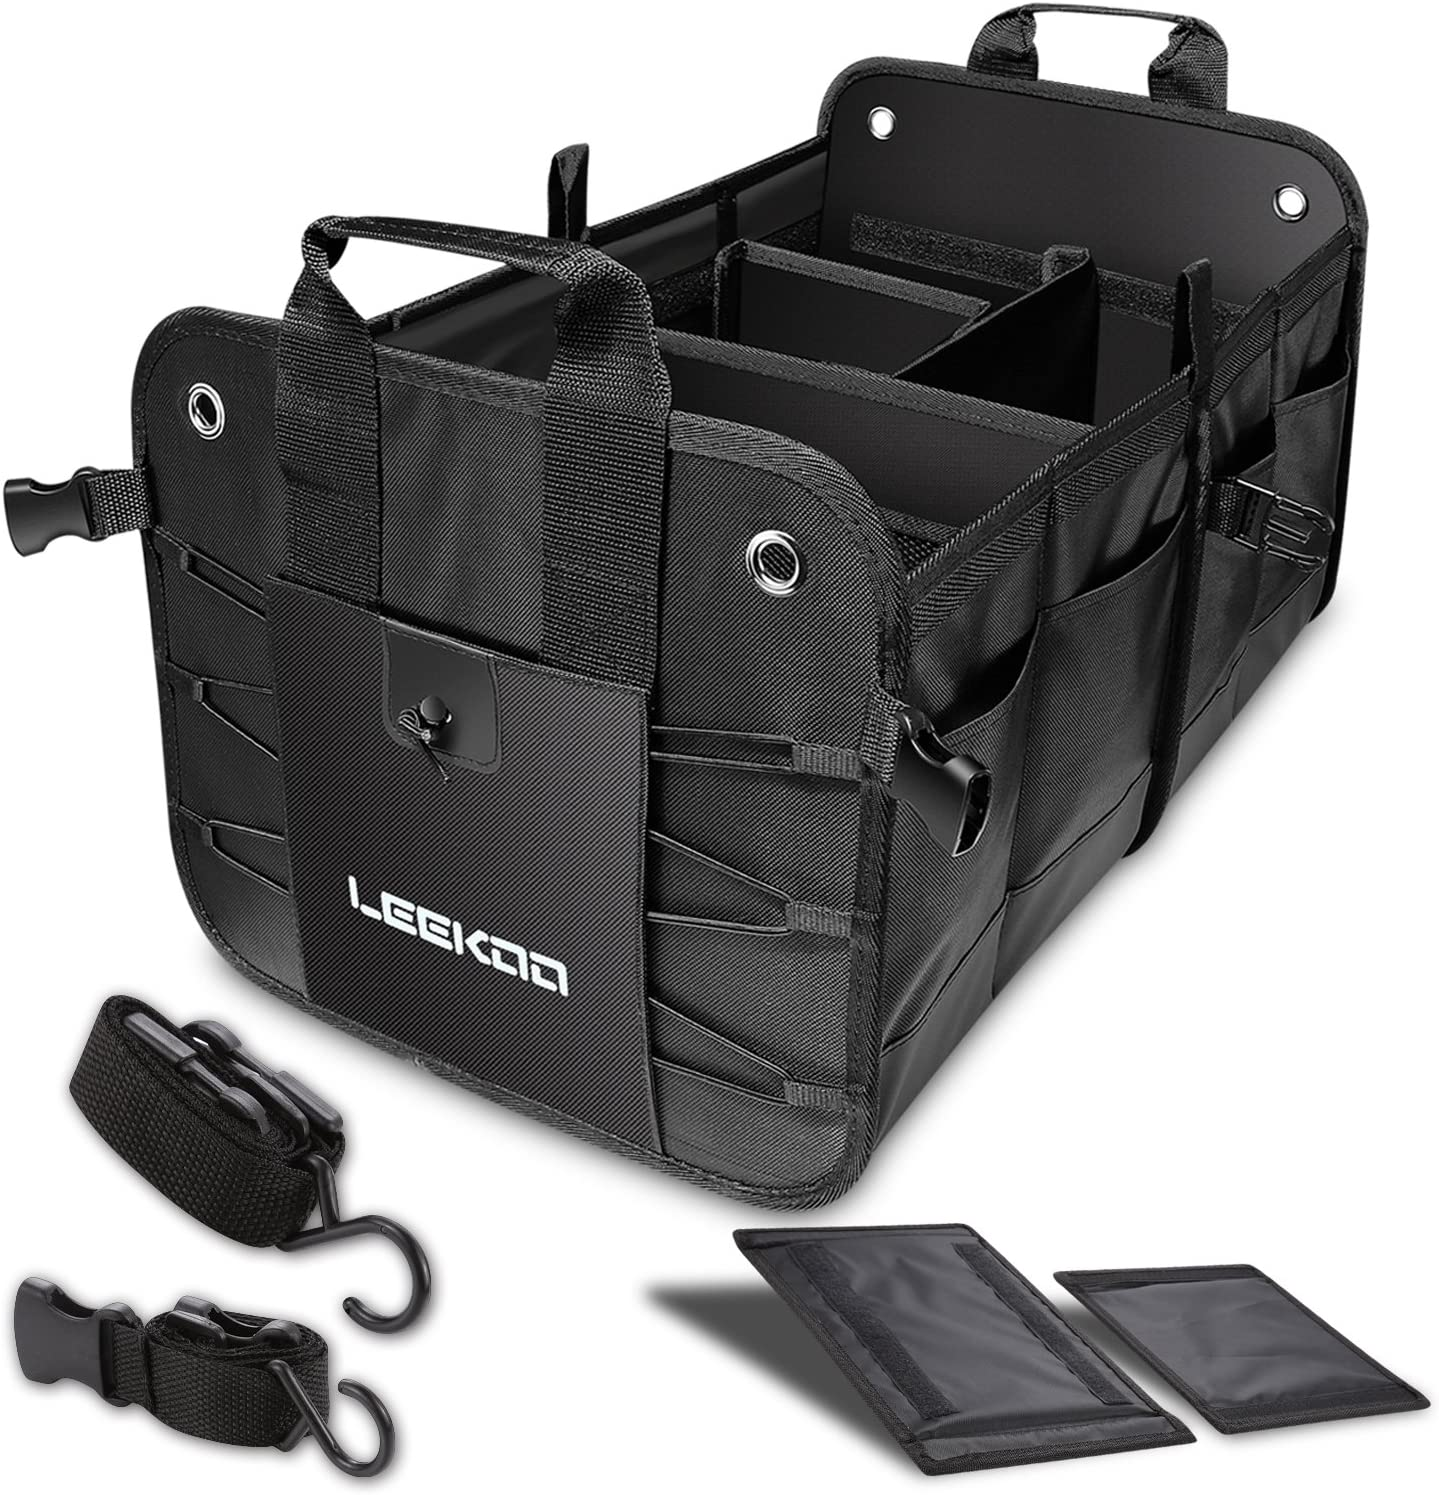 Selling and selling LEEKOO Collapsible Store Portable Multi Organiz Compartments Trunk Car